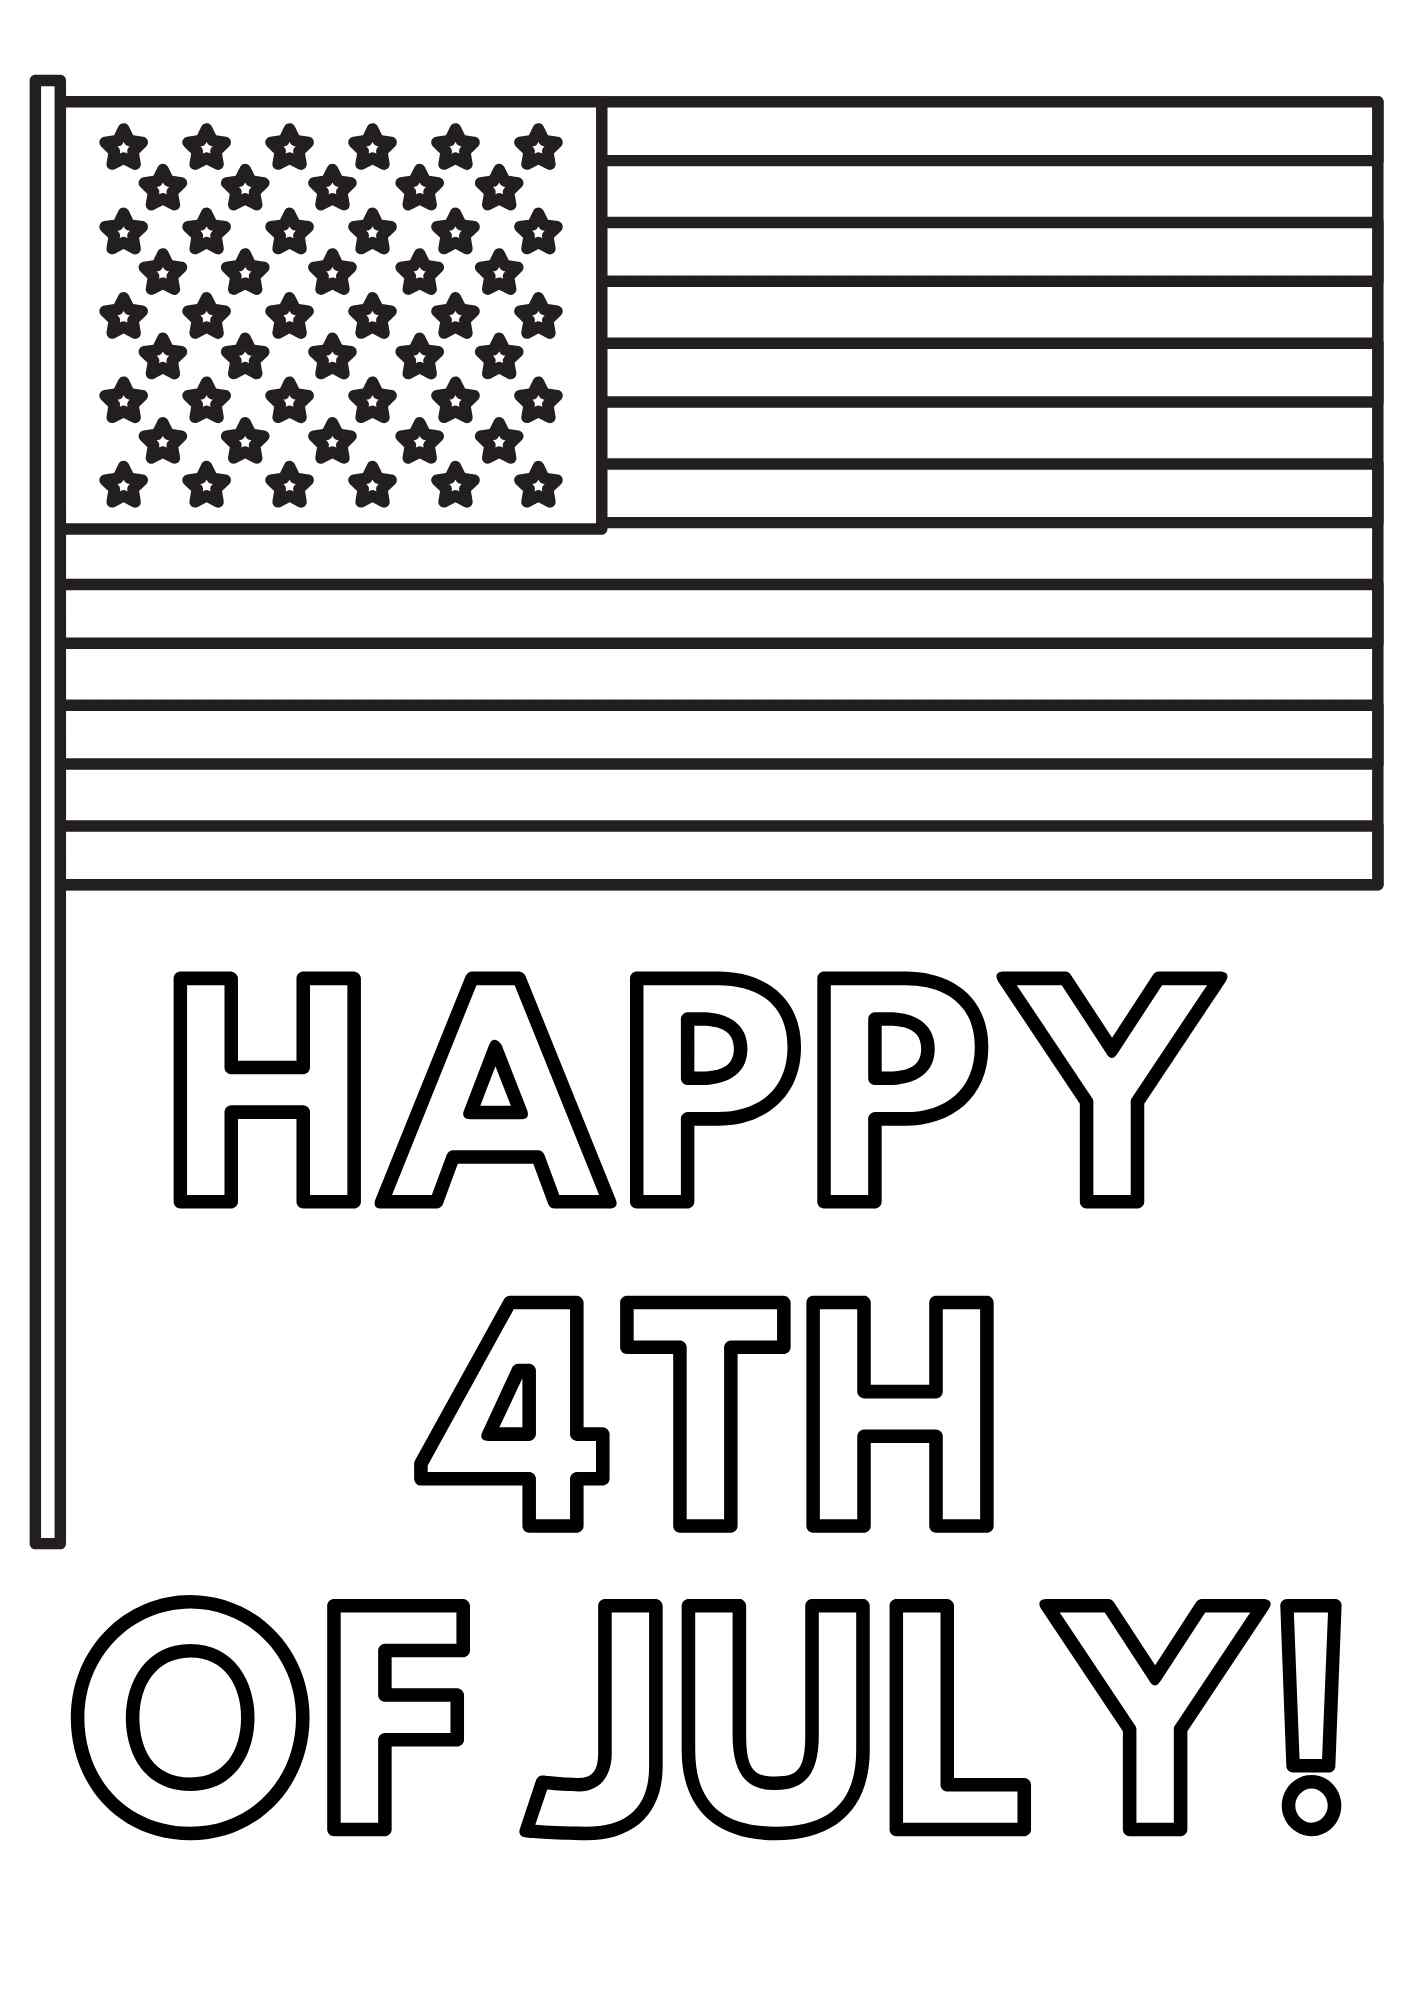 4th of july coloring pages/coloring pages 4th of july